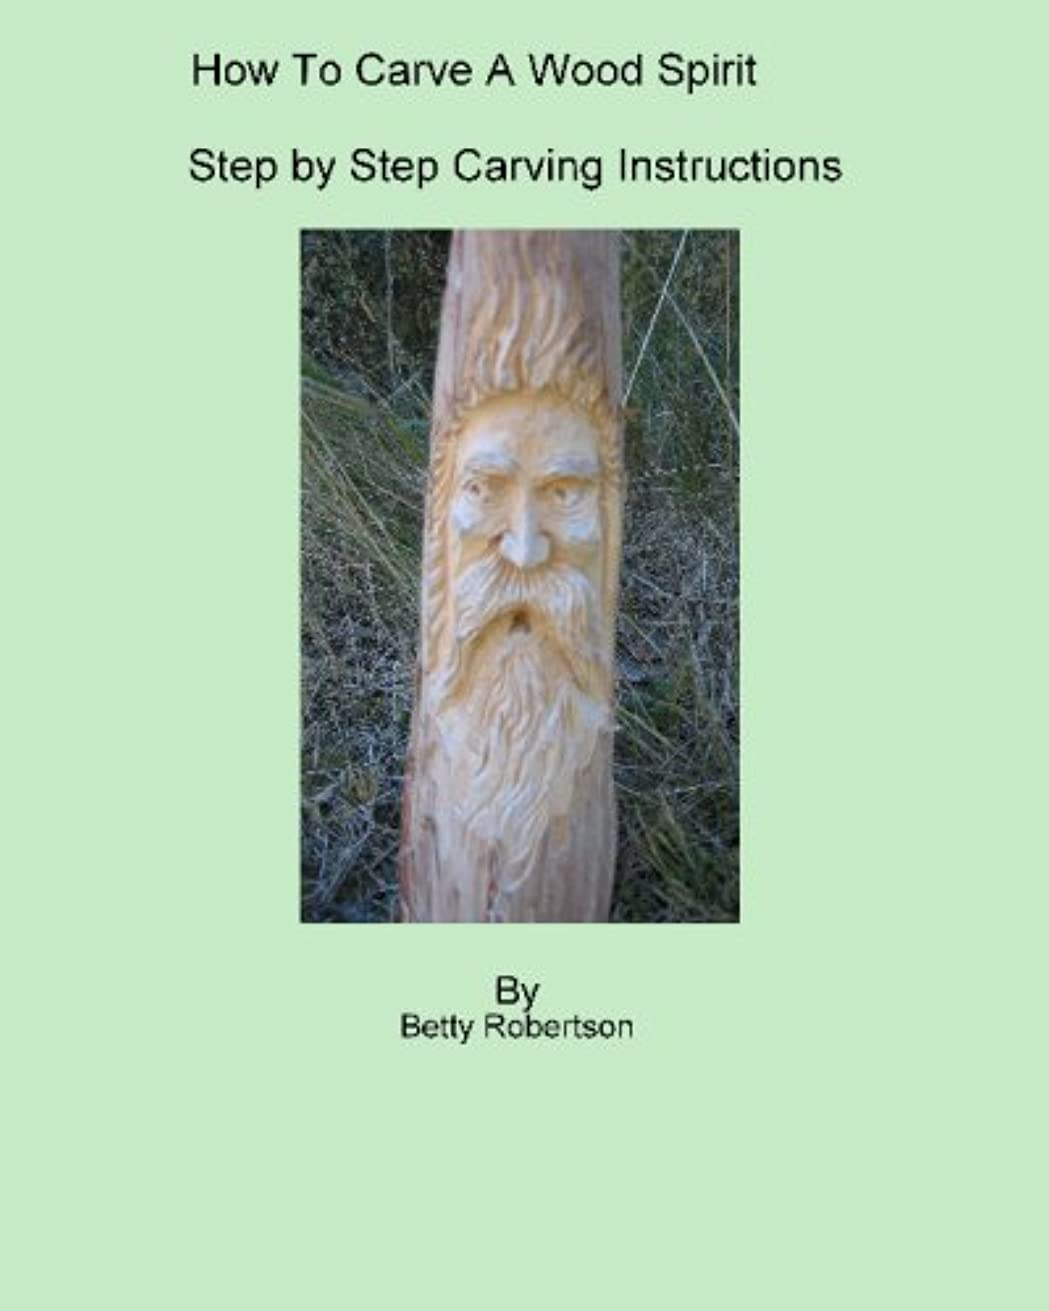 How To Carve A Wood Spirit: Complete Instruction On Carving Tools And Carving The Wood Spirit Beginning To End.